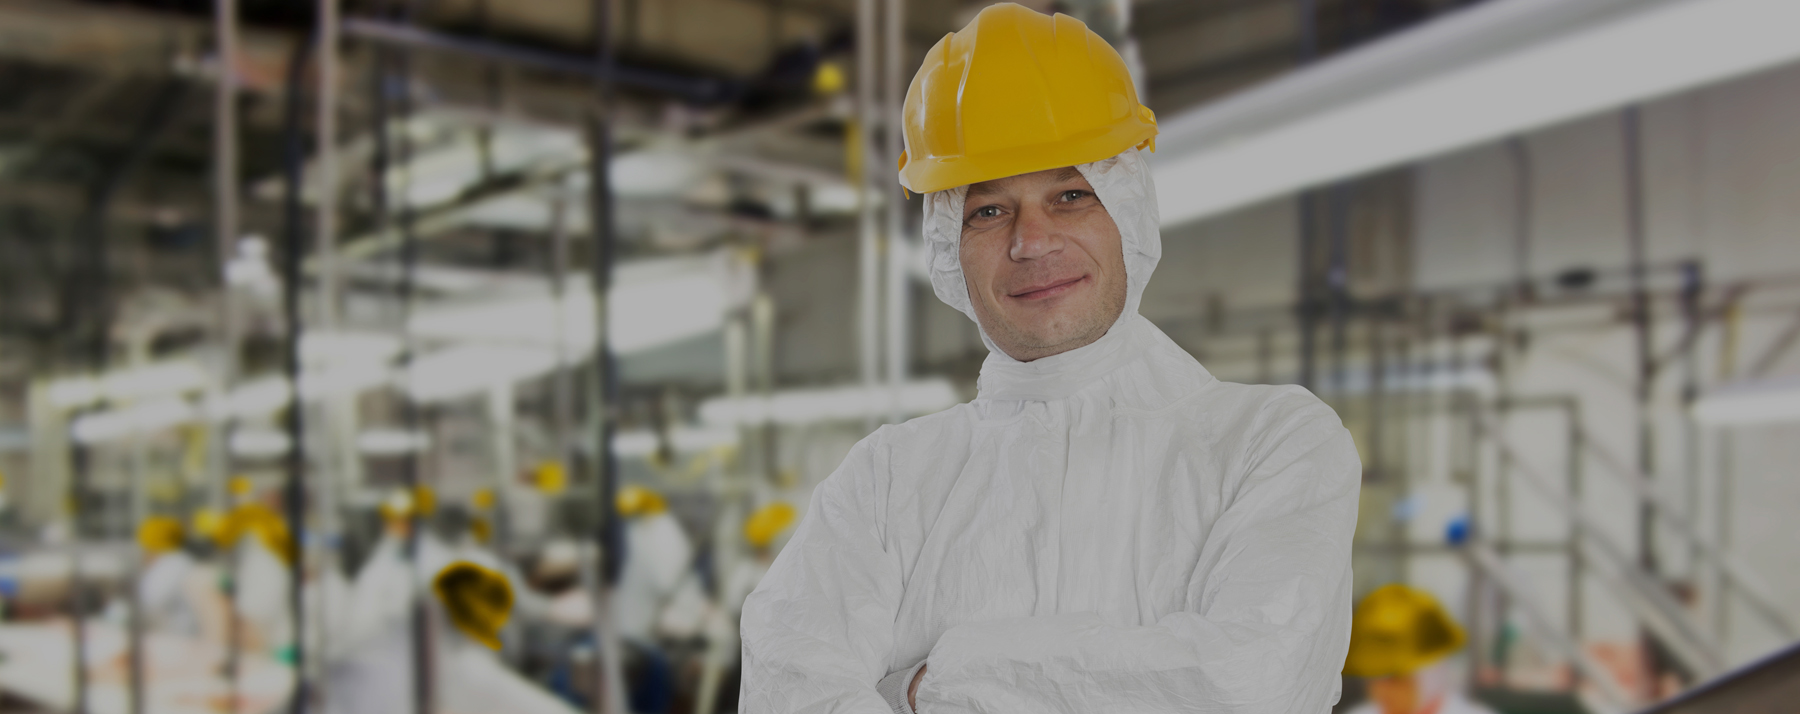 Selecting the Proper PPE for Food Plant Safety